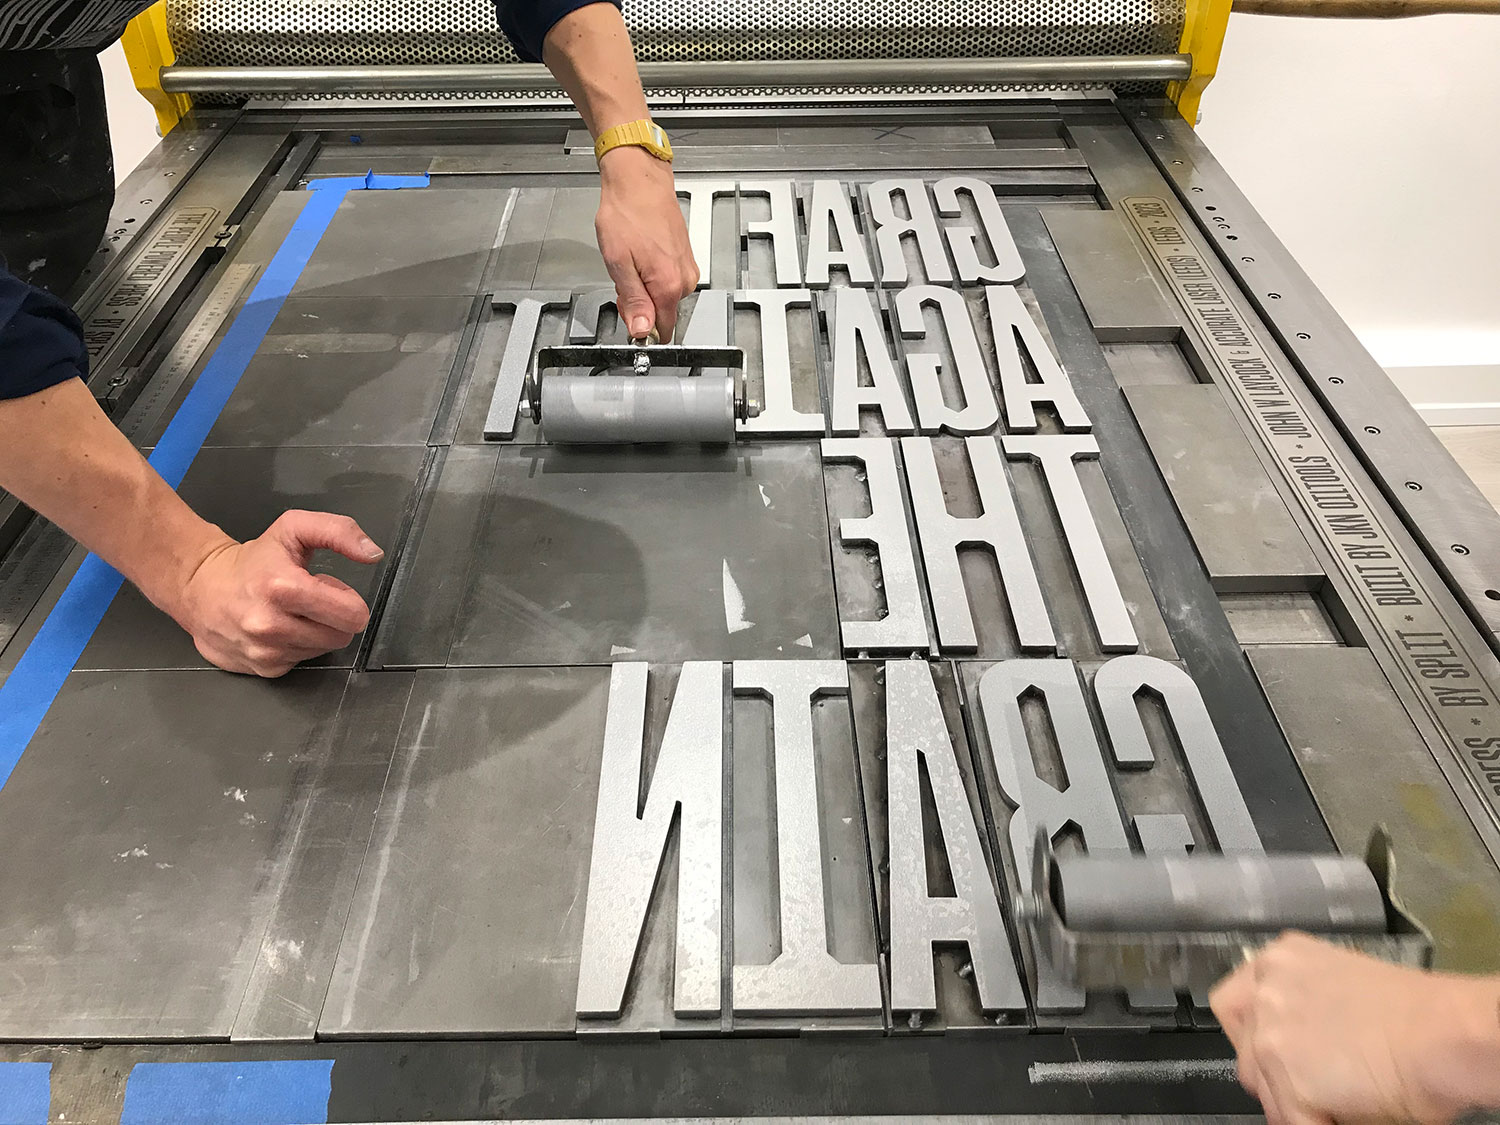 Inking the press